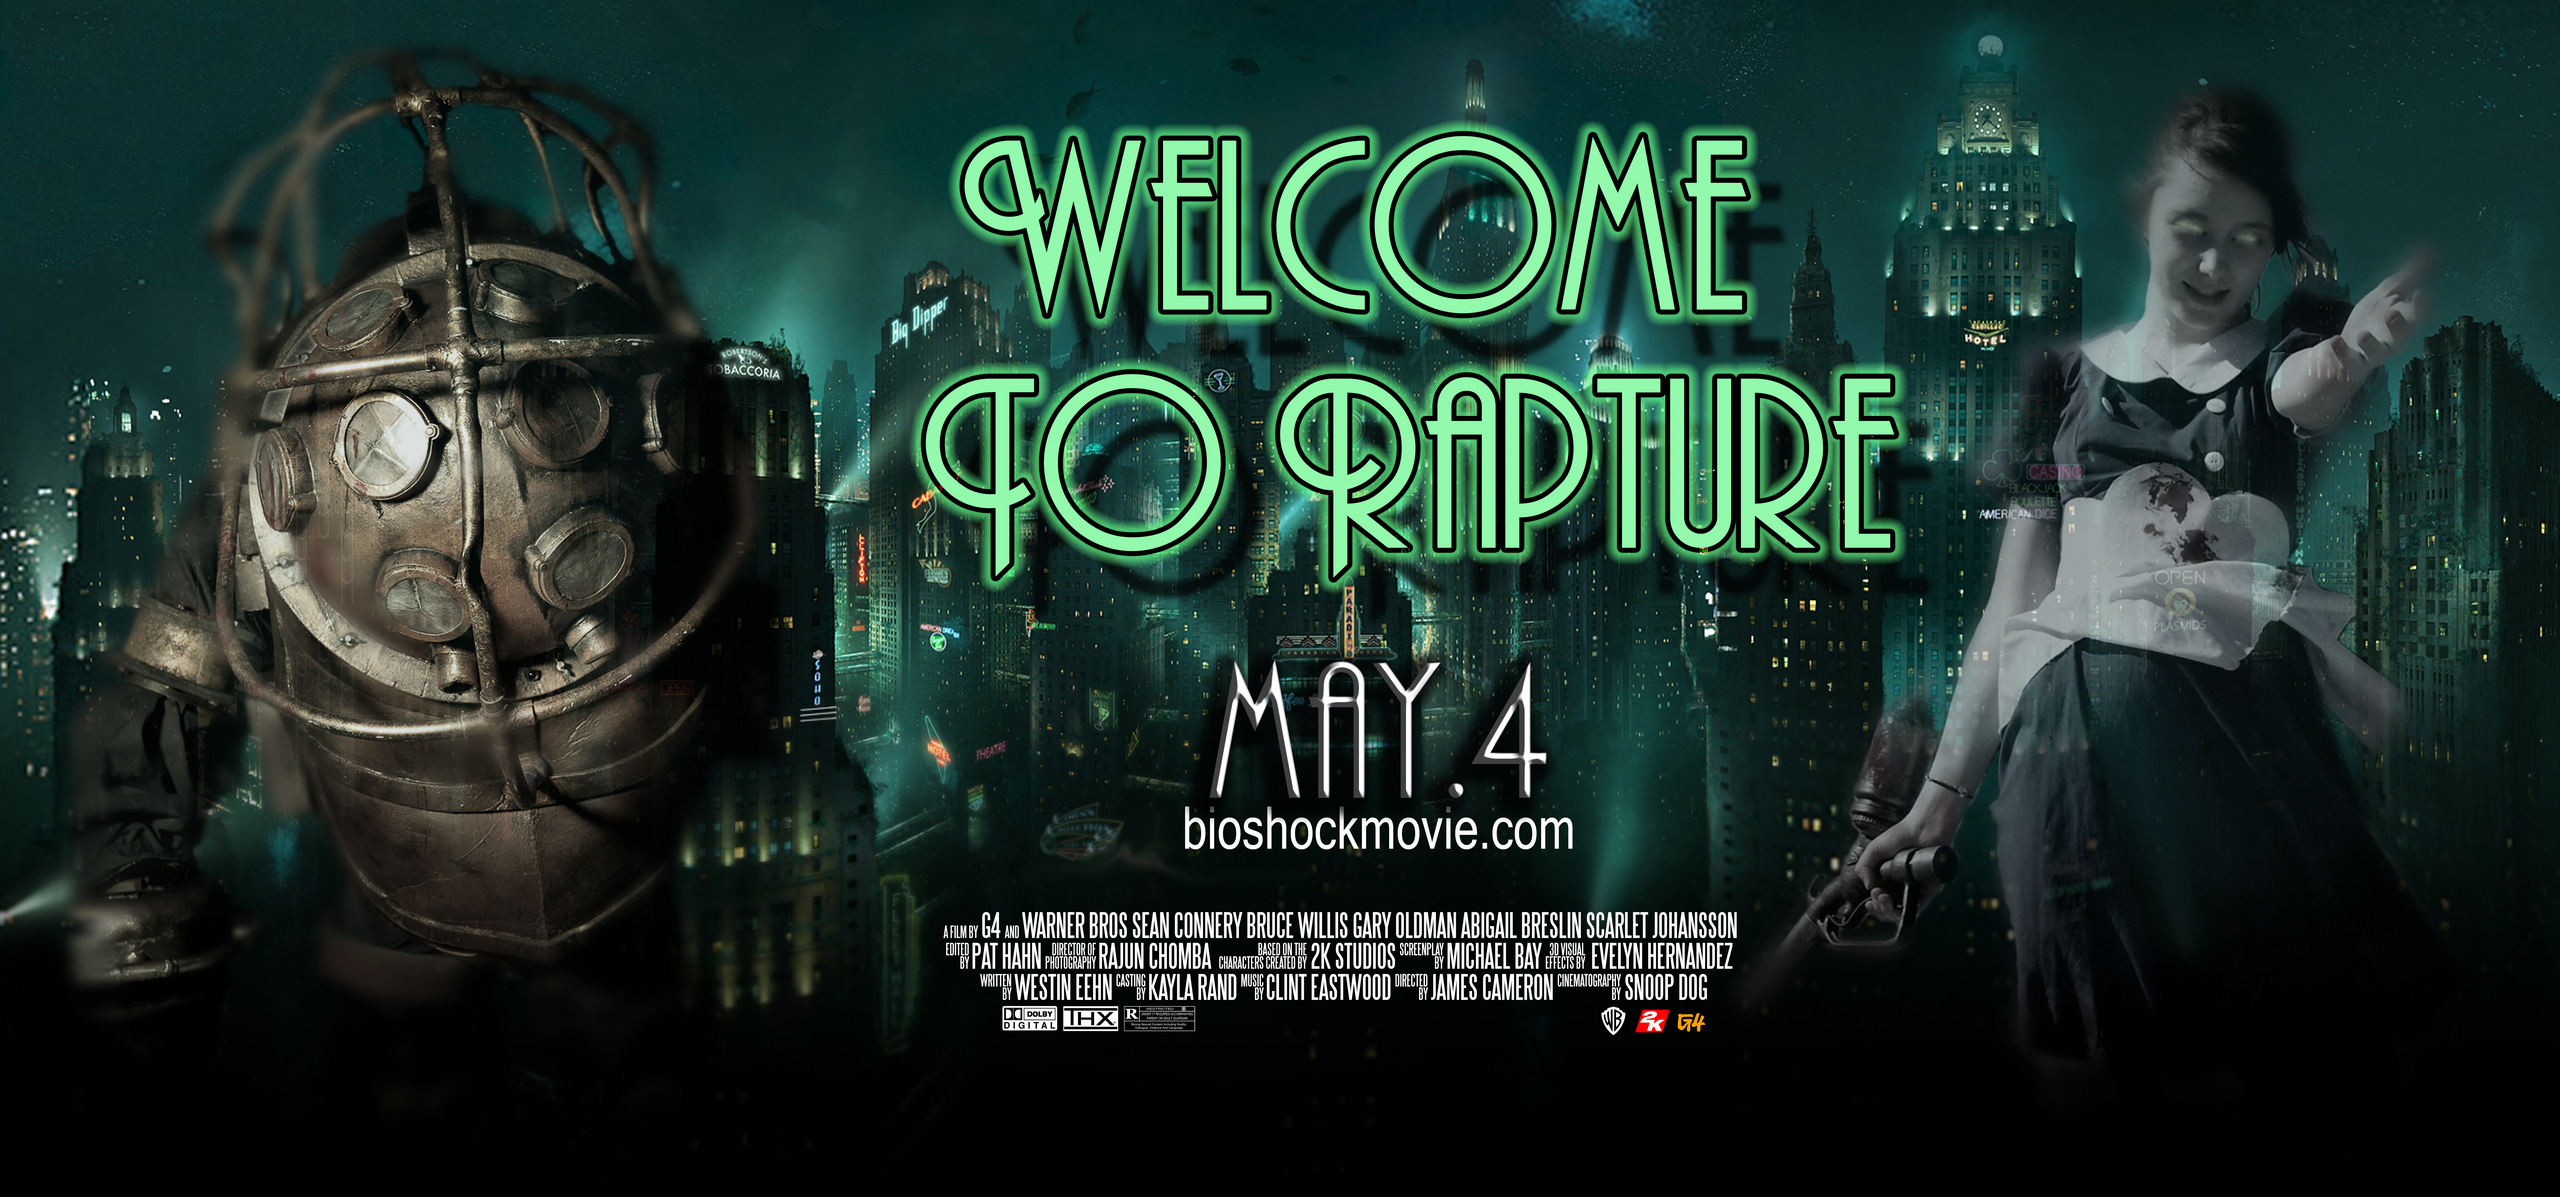 Bioshock Images FAKE Movie Poster HD Wallpaper And Background Photos